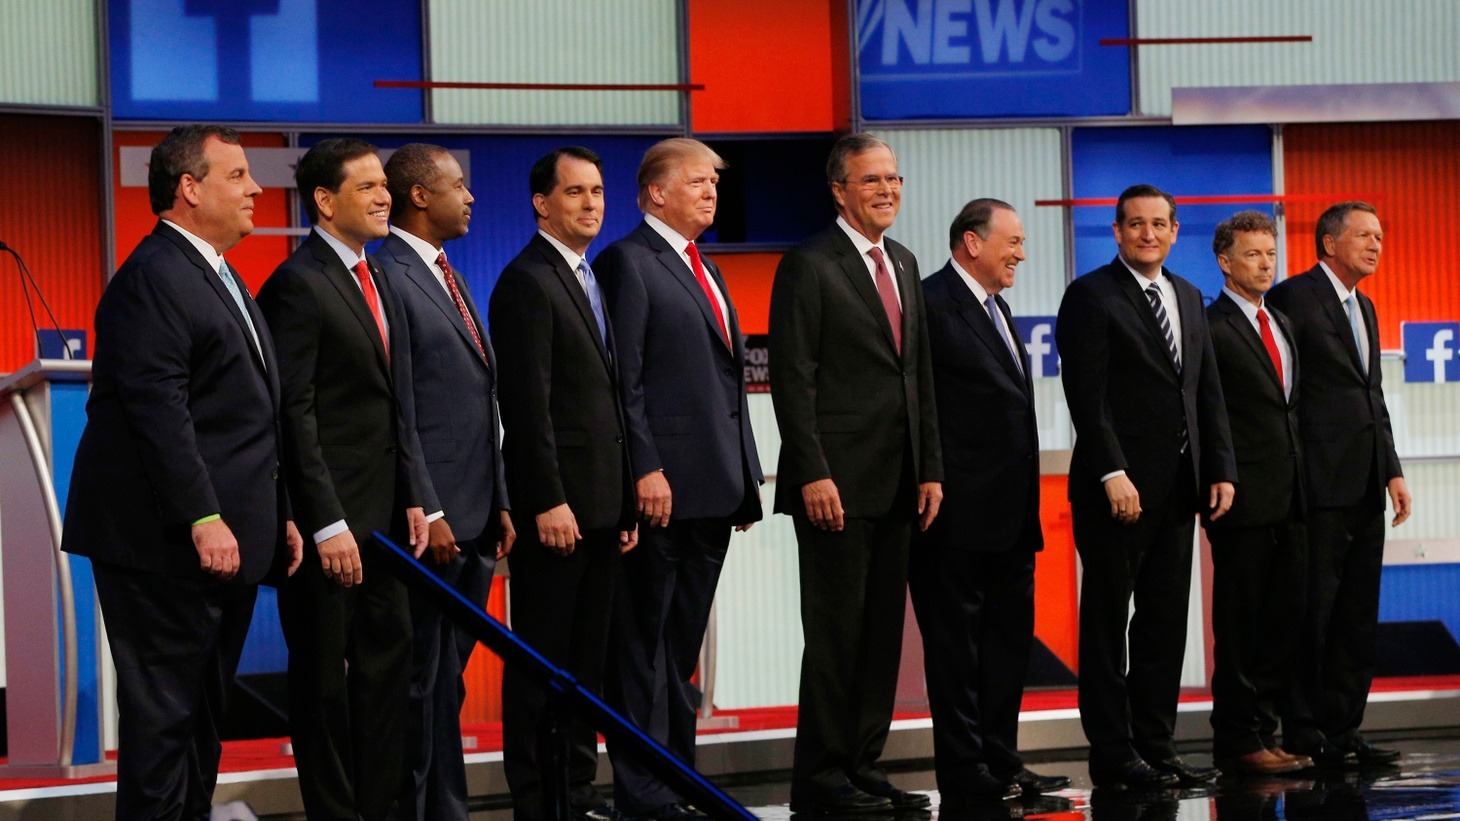 Nine other candidates were the supporting cast last night as Donald Trump dominated the Republican presidential candidates first confrontation on prime-time TV. We hear they tried to challenge him for the lead.